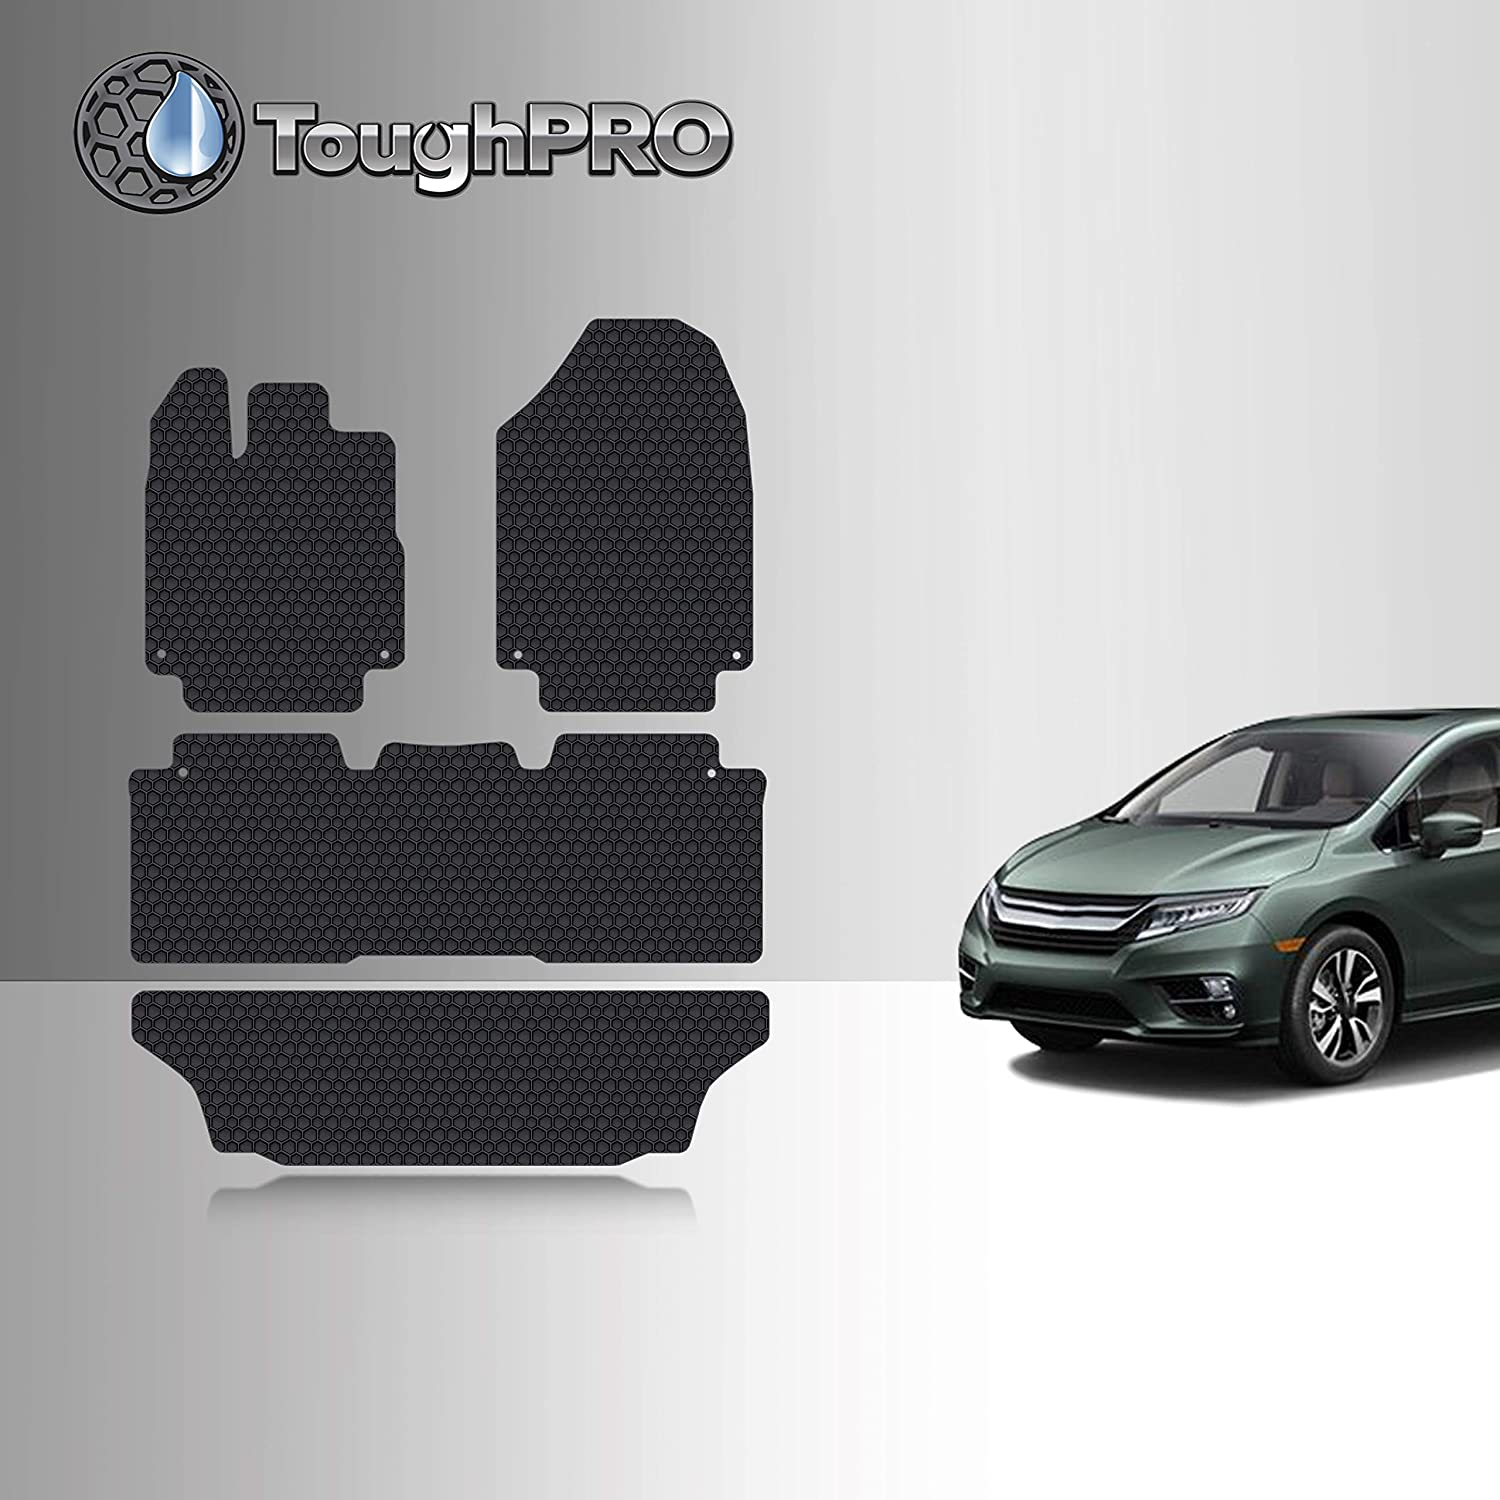 TOUGHPRO Floor Mat Accessories Set 1st + 2nd + 3rd Row Compatible with Honda Odyssey - All Weather - Heavy Duty - (Made in USA) - Black Rubber - 2018, 2019, 2020, 2021